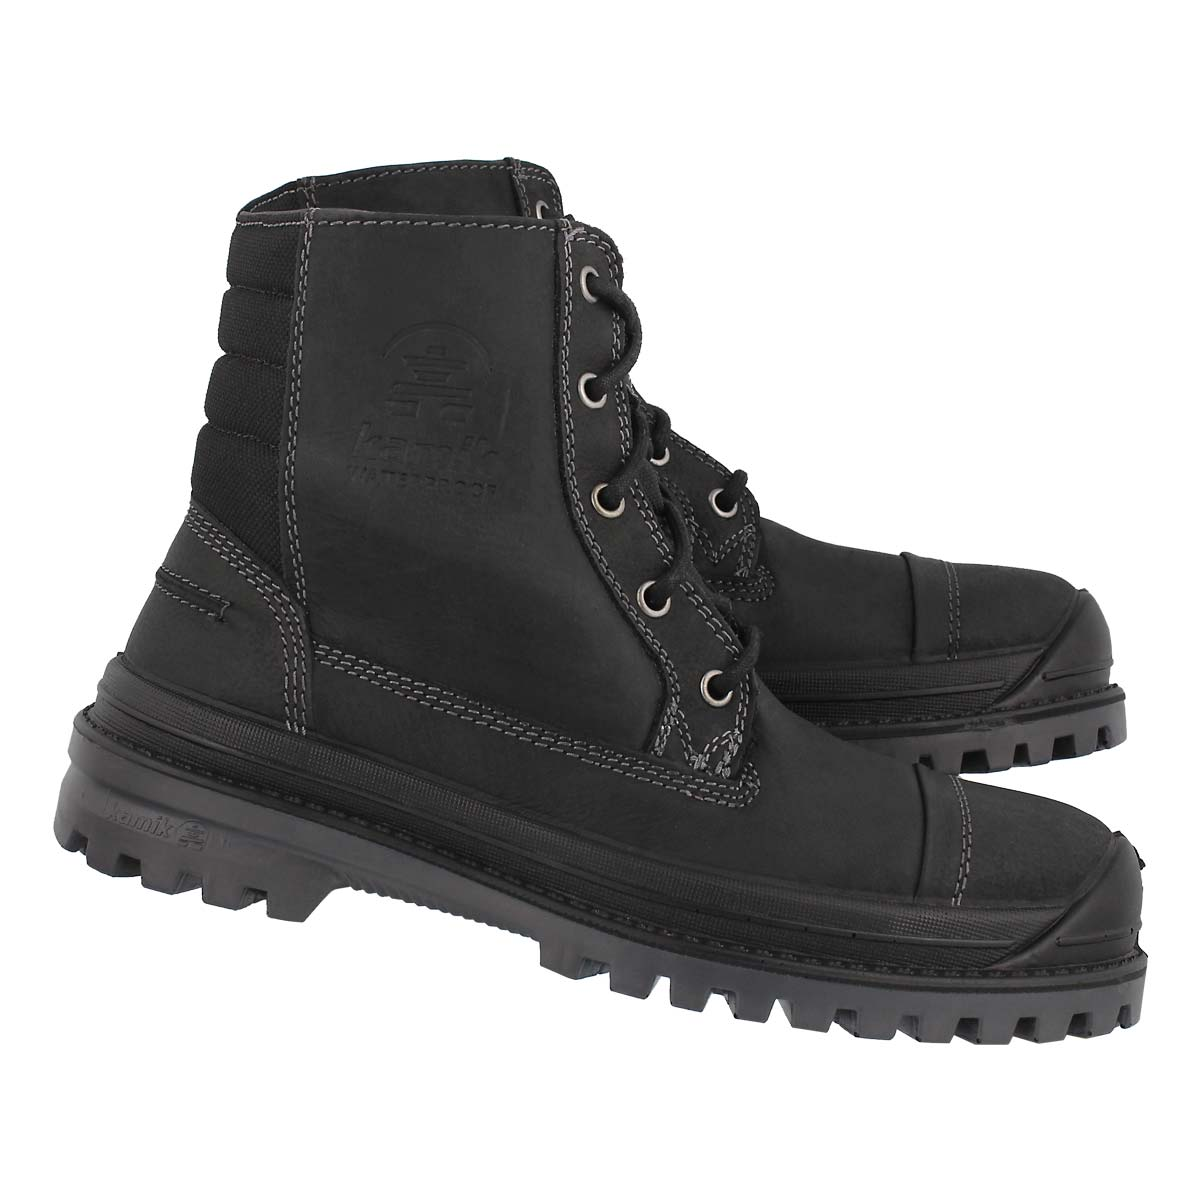 Mns Griffon black laceup wp winter boot